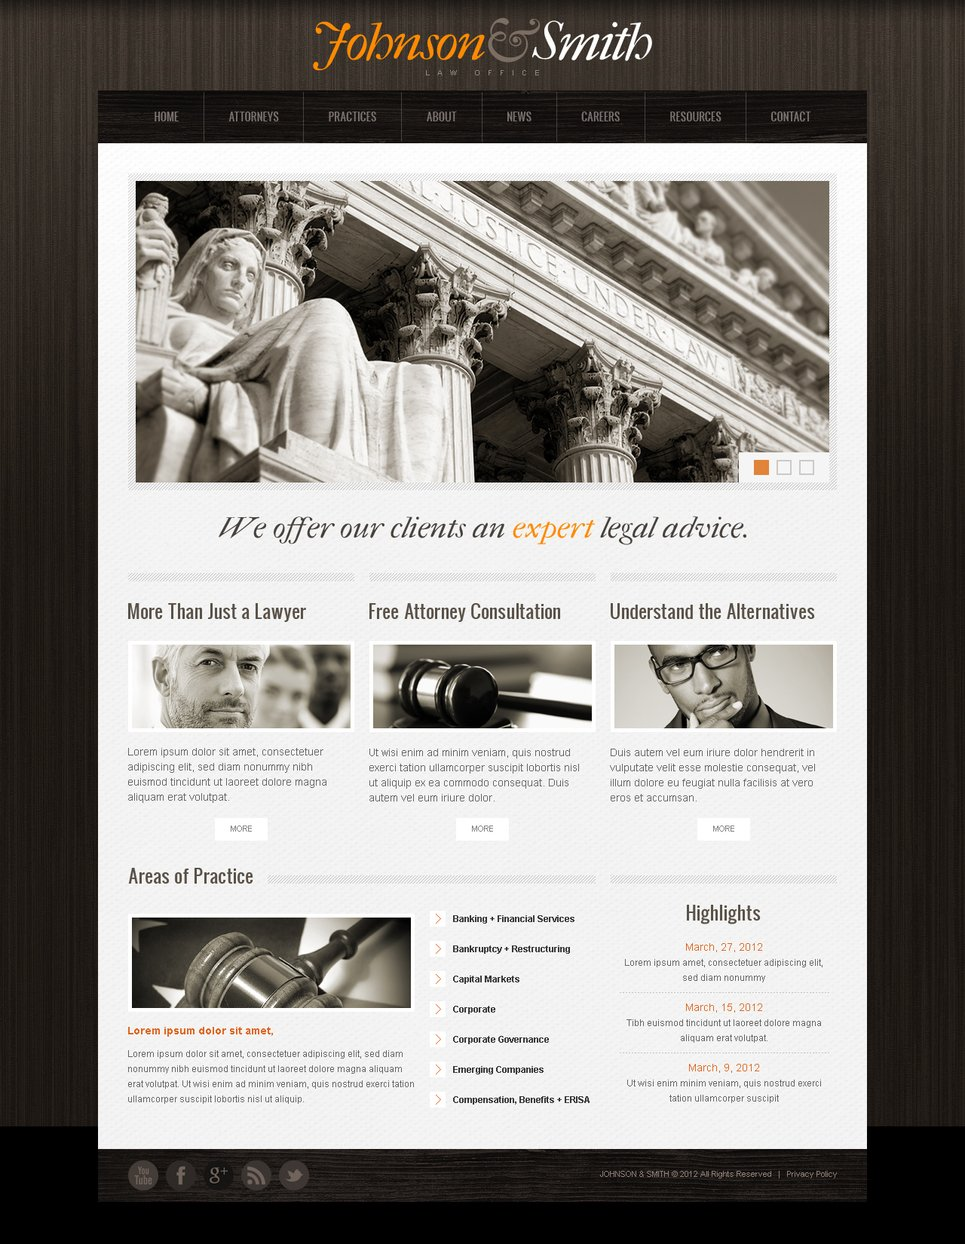 Attorney and Lawyer Website Template with Wood Texture on Background - image